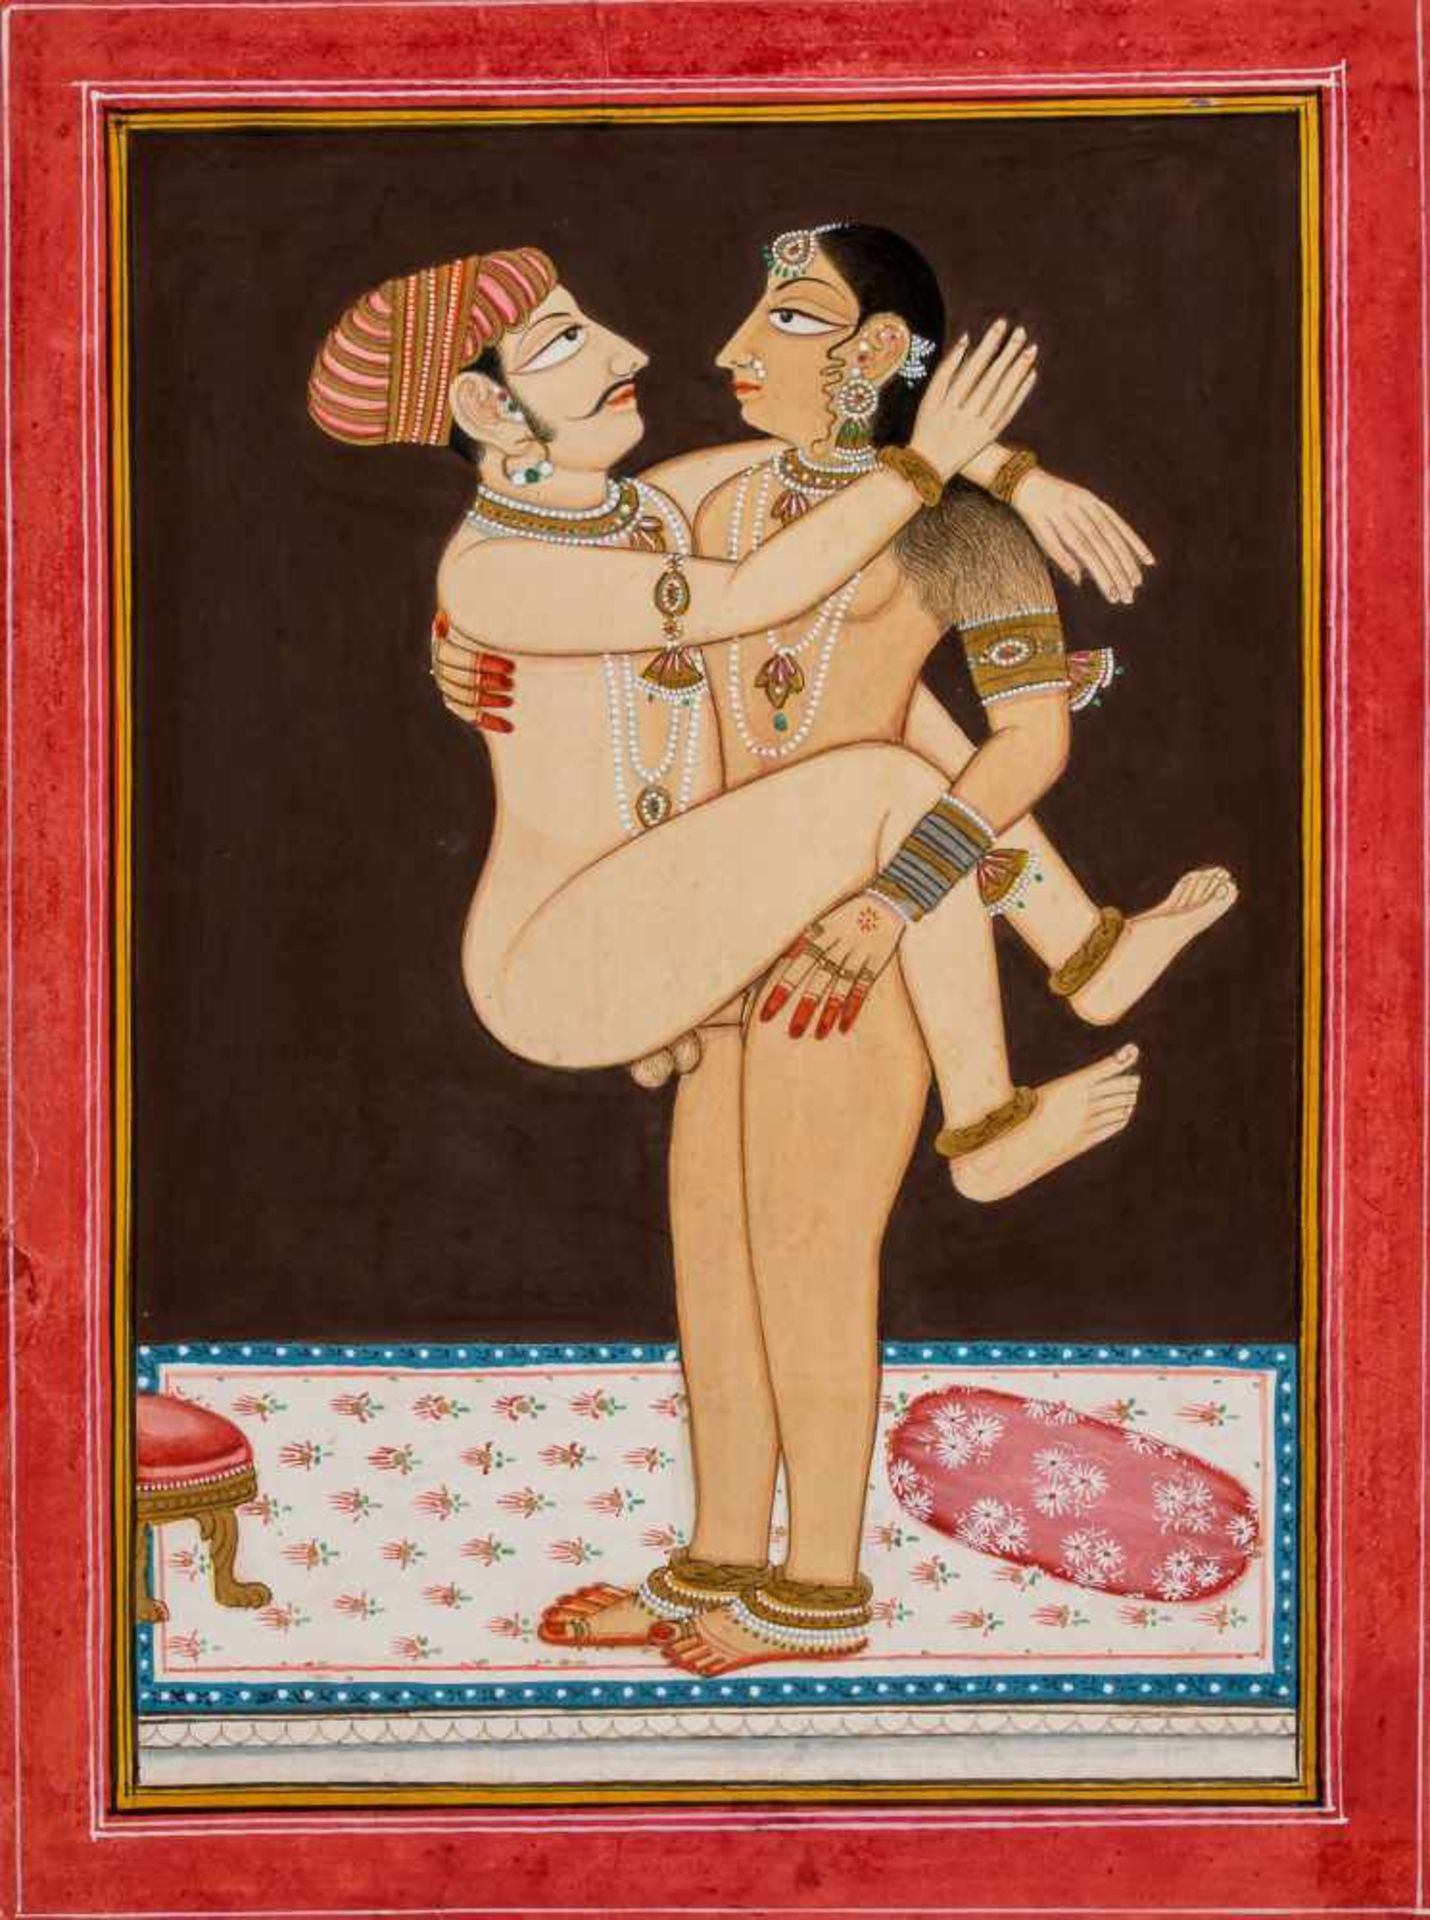 AN EROTIC INDIAN PAINTING - 19TH – EARLY 20th CENTURY Gouache and gold paint on paperIndia, late